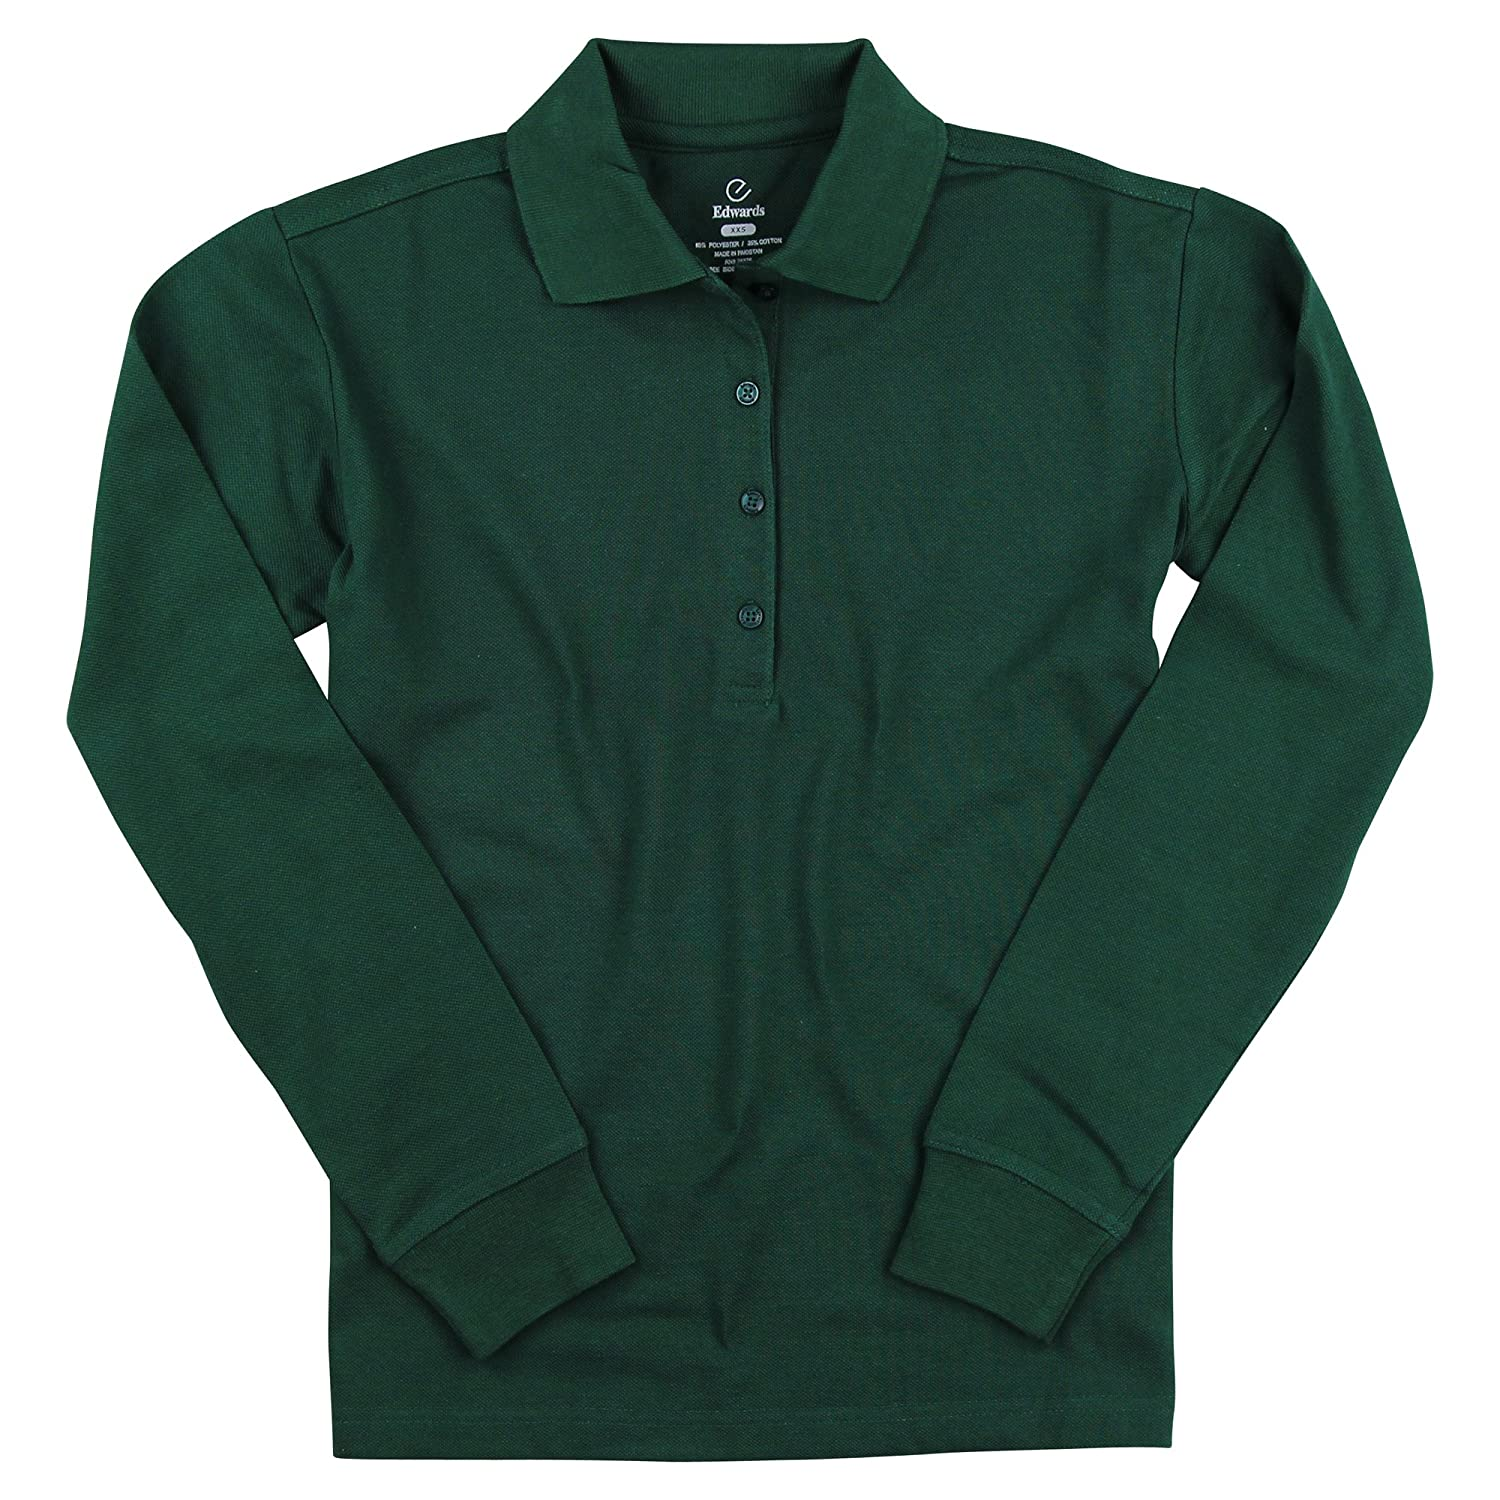 Women's Long Sleeve Poly/Cotton Pique Polo Shirt